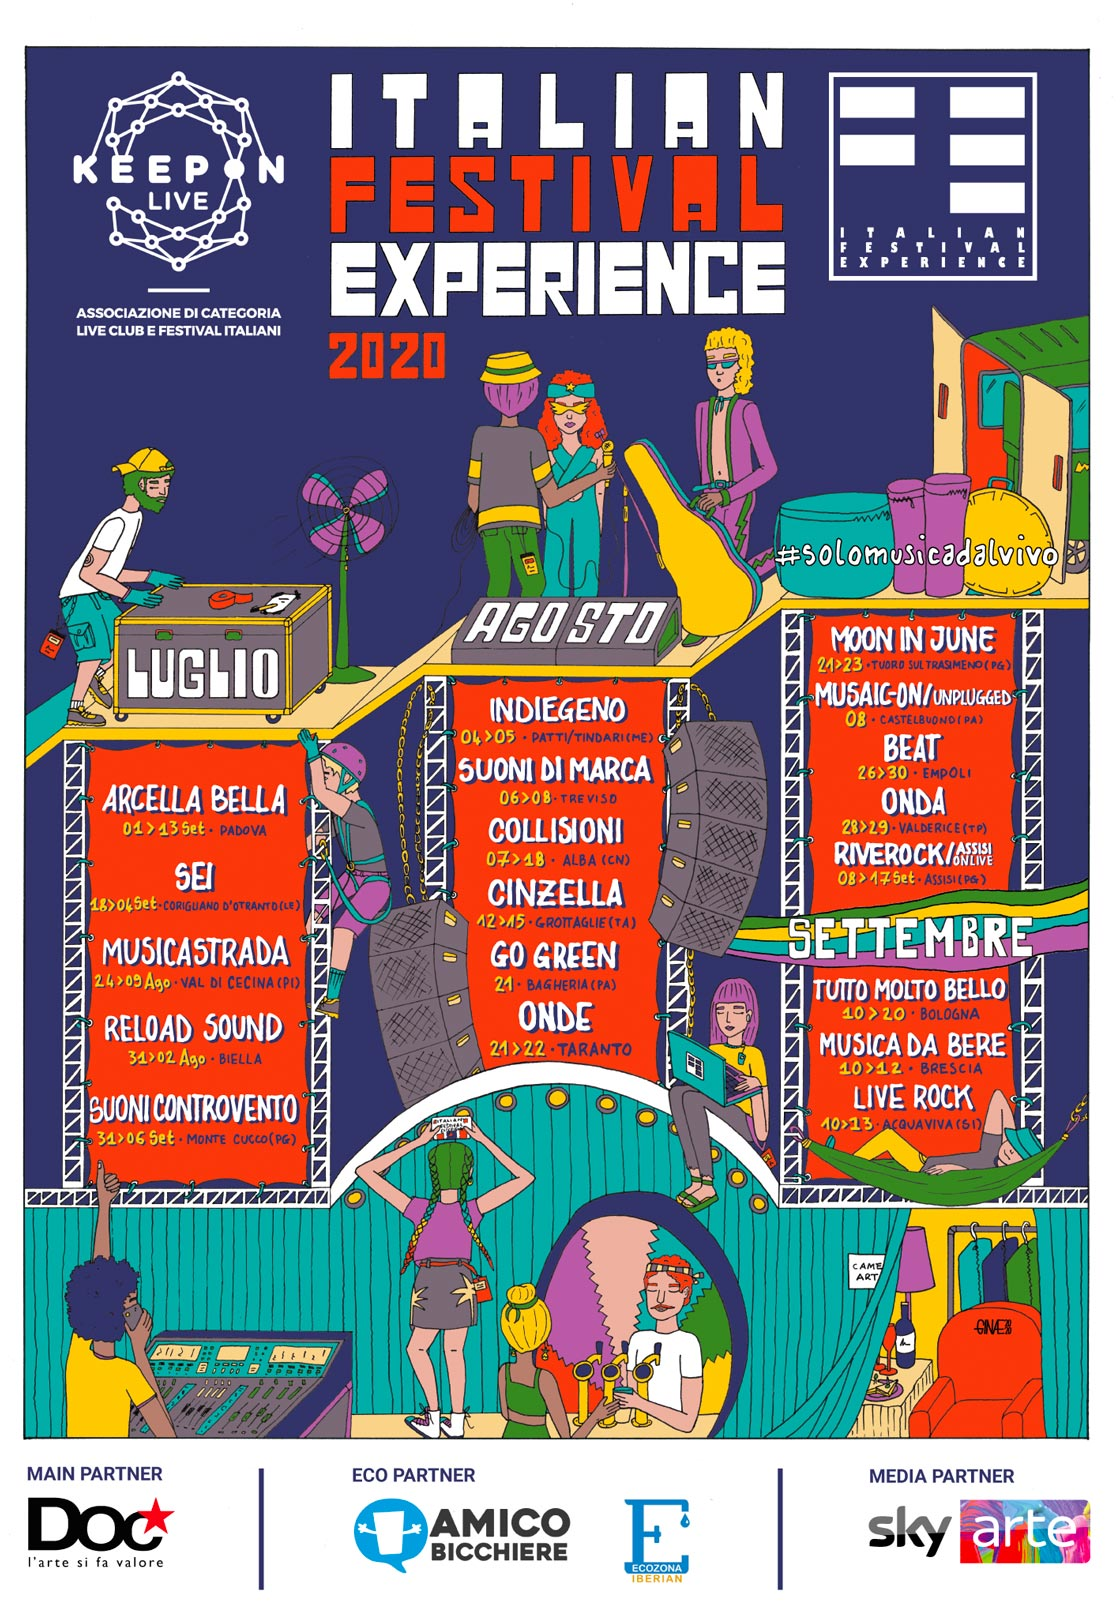 Festival Experience 2020